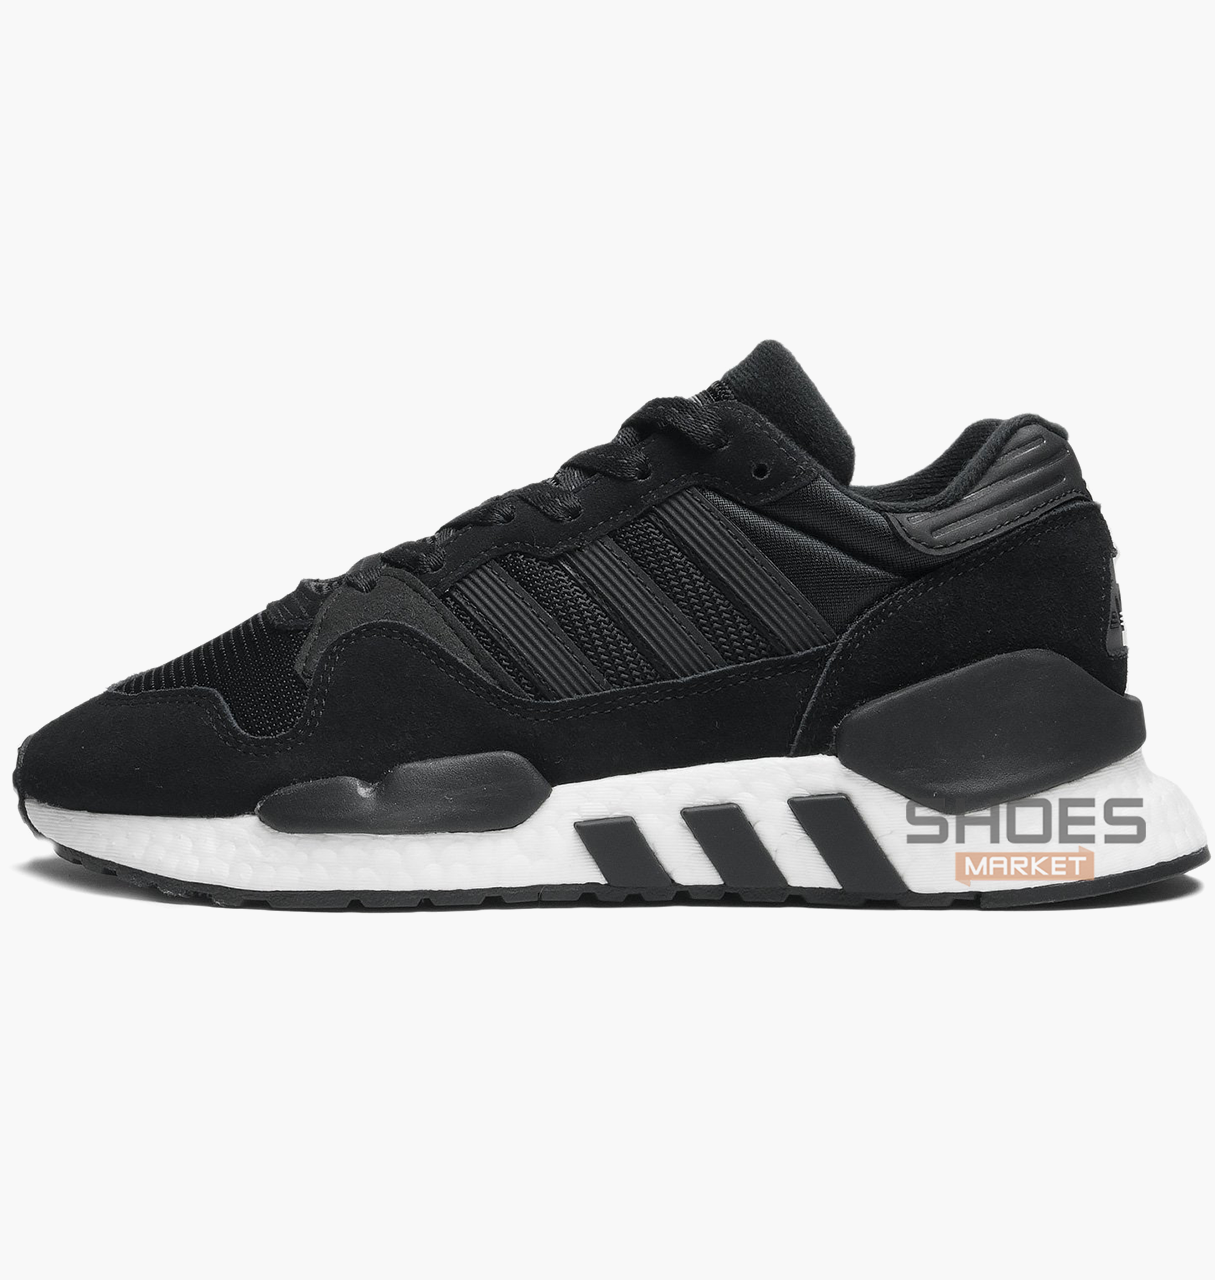 reputable site fff03 b59a8 Мужские кроссовки Adidas ZX 930 x EQT Never Made